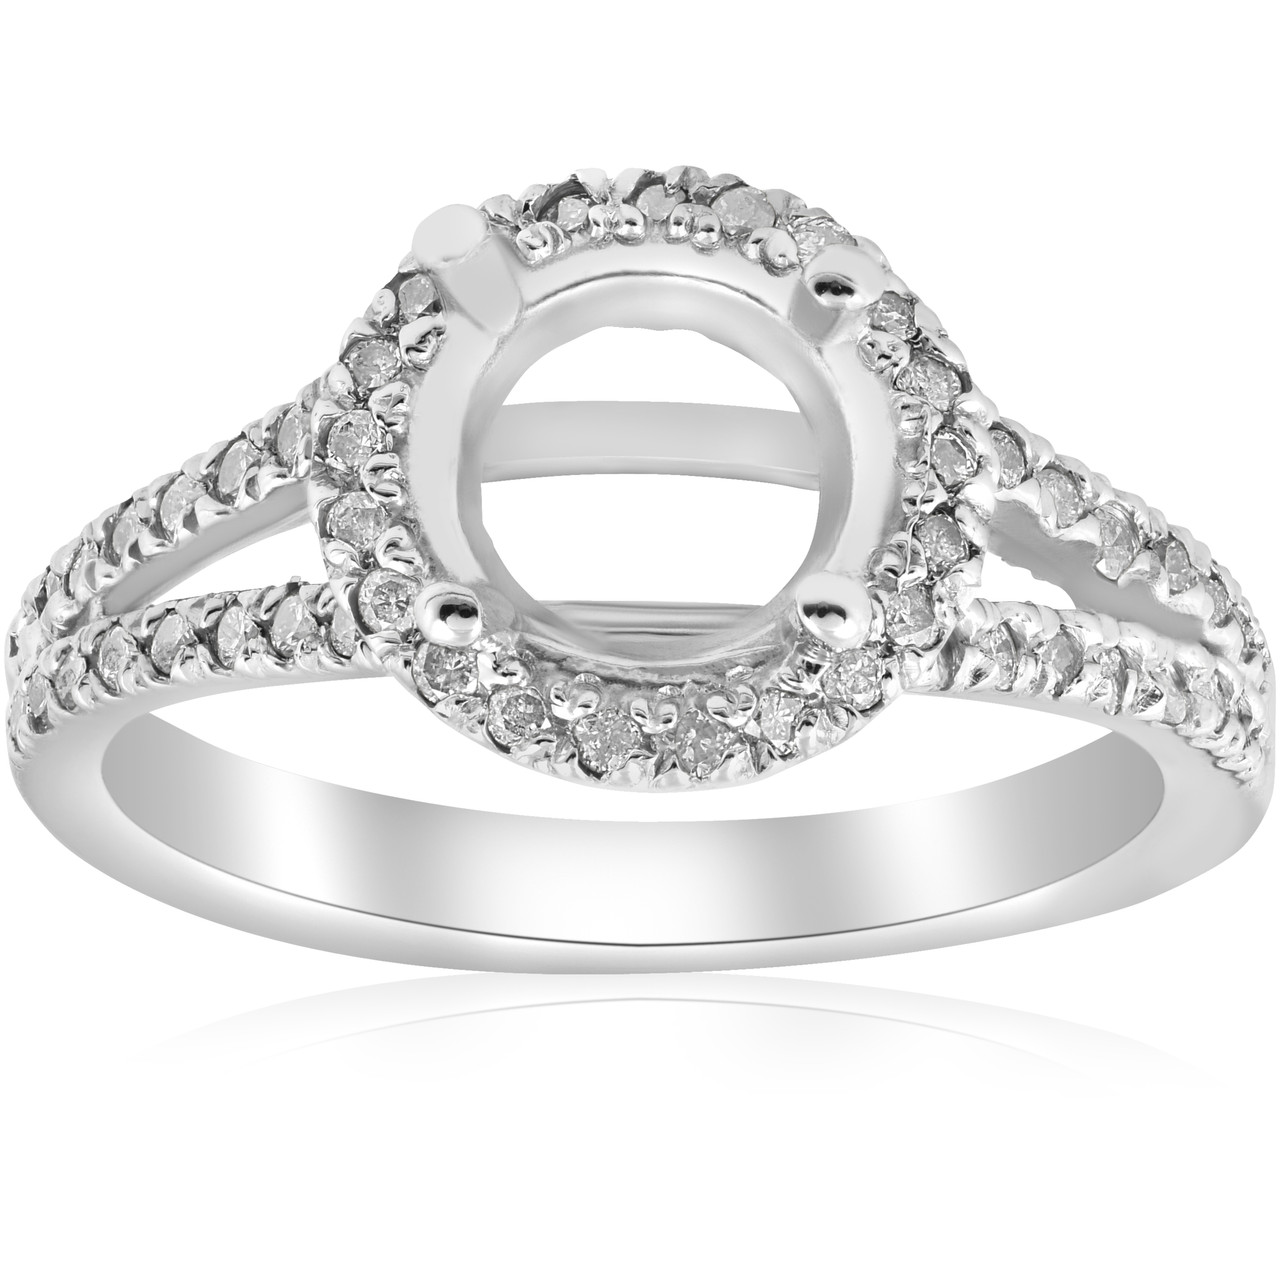 diamond promise ring wedding jewellery rings round settings stone three